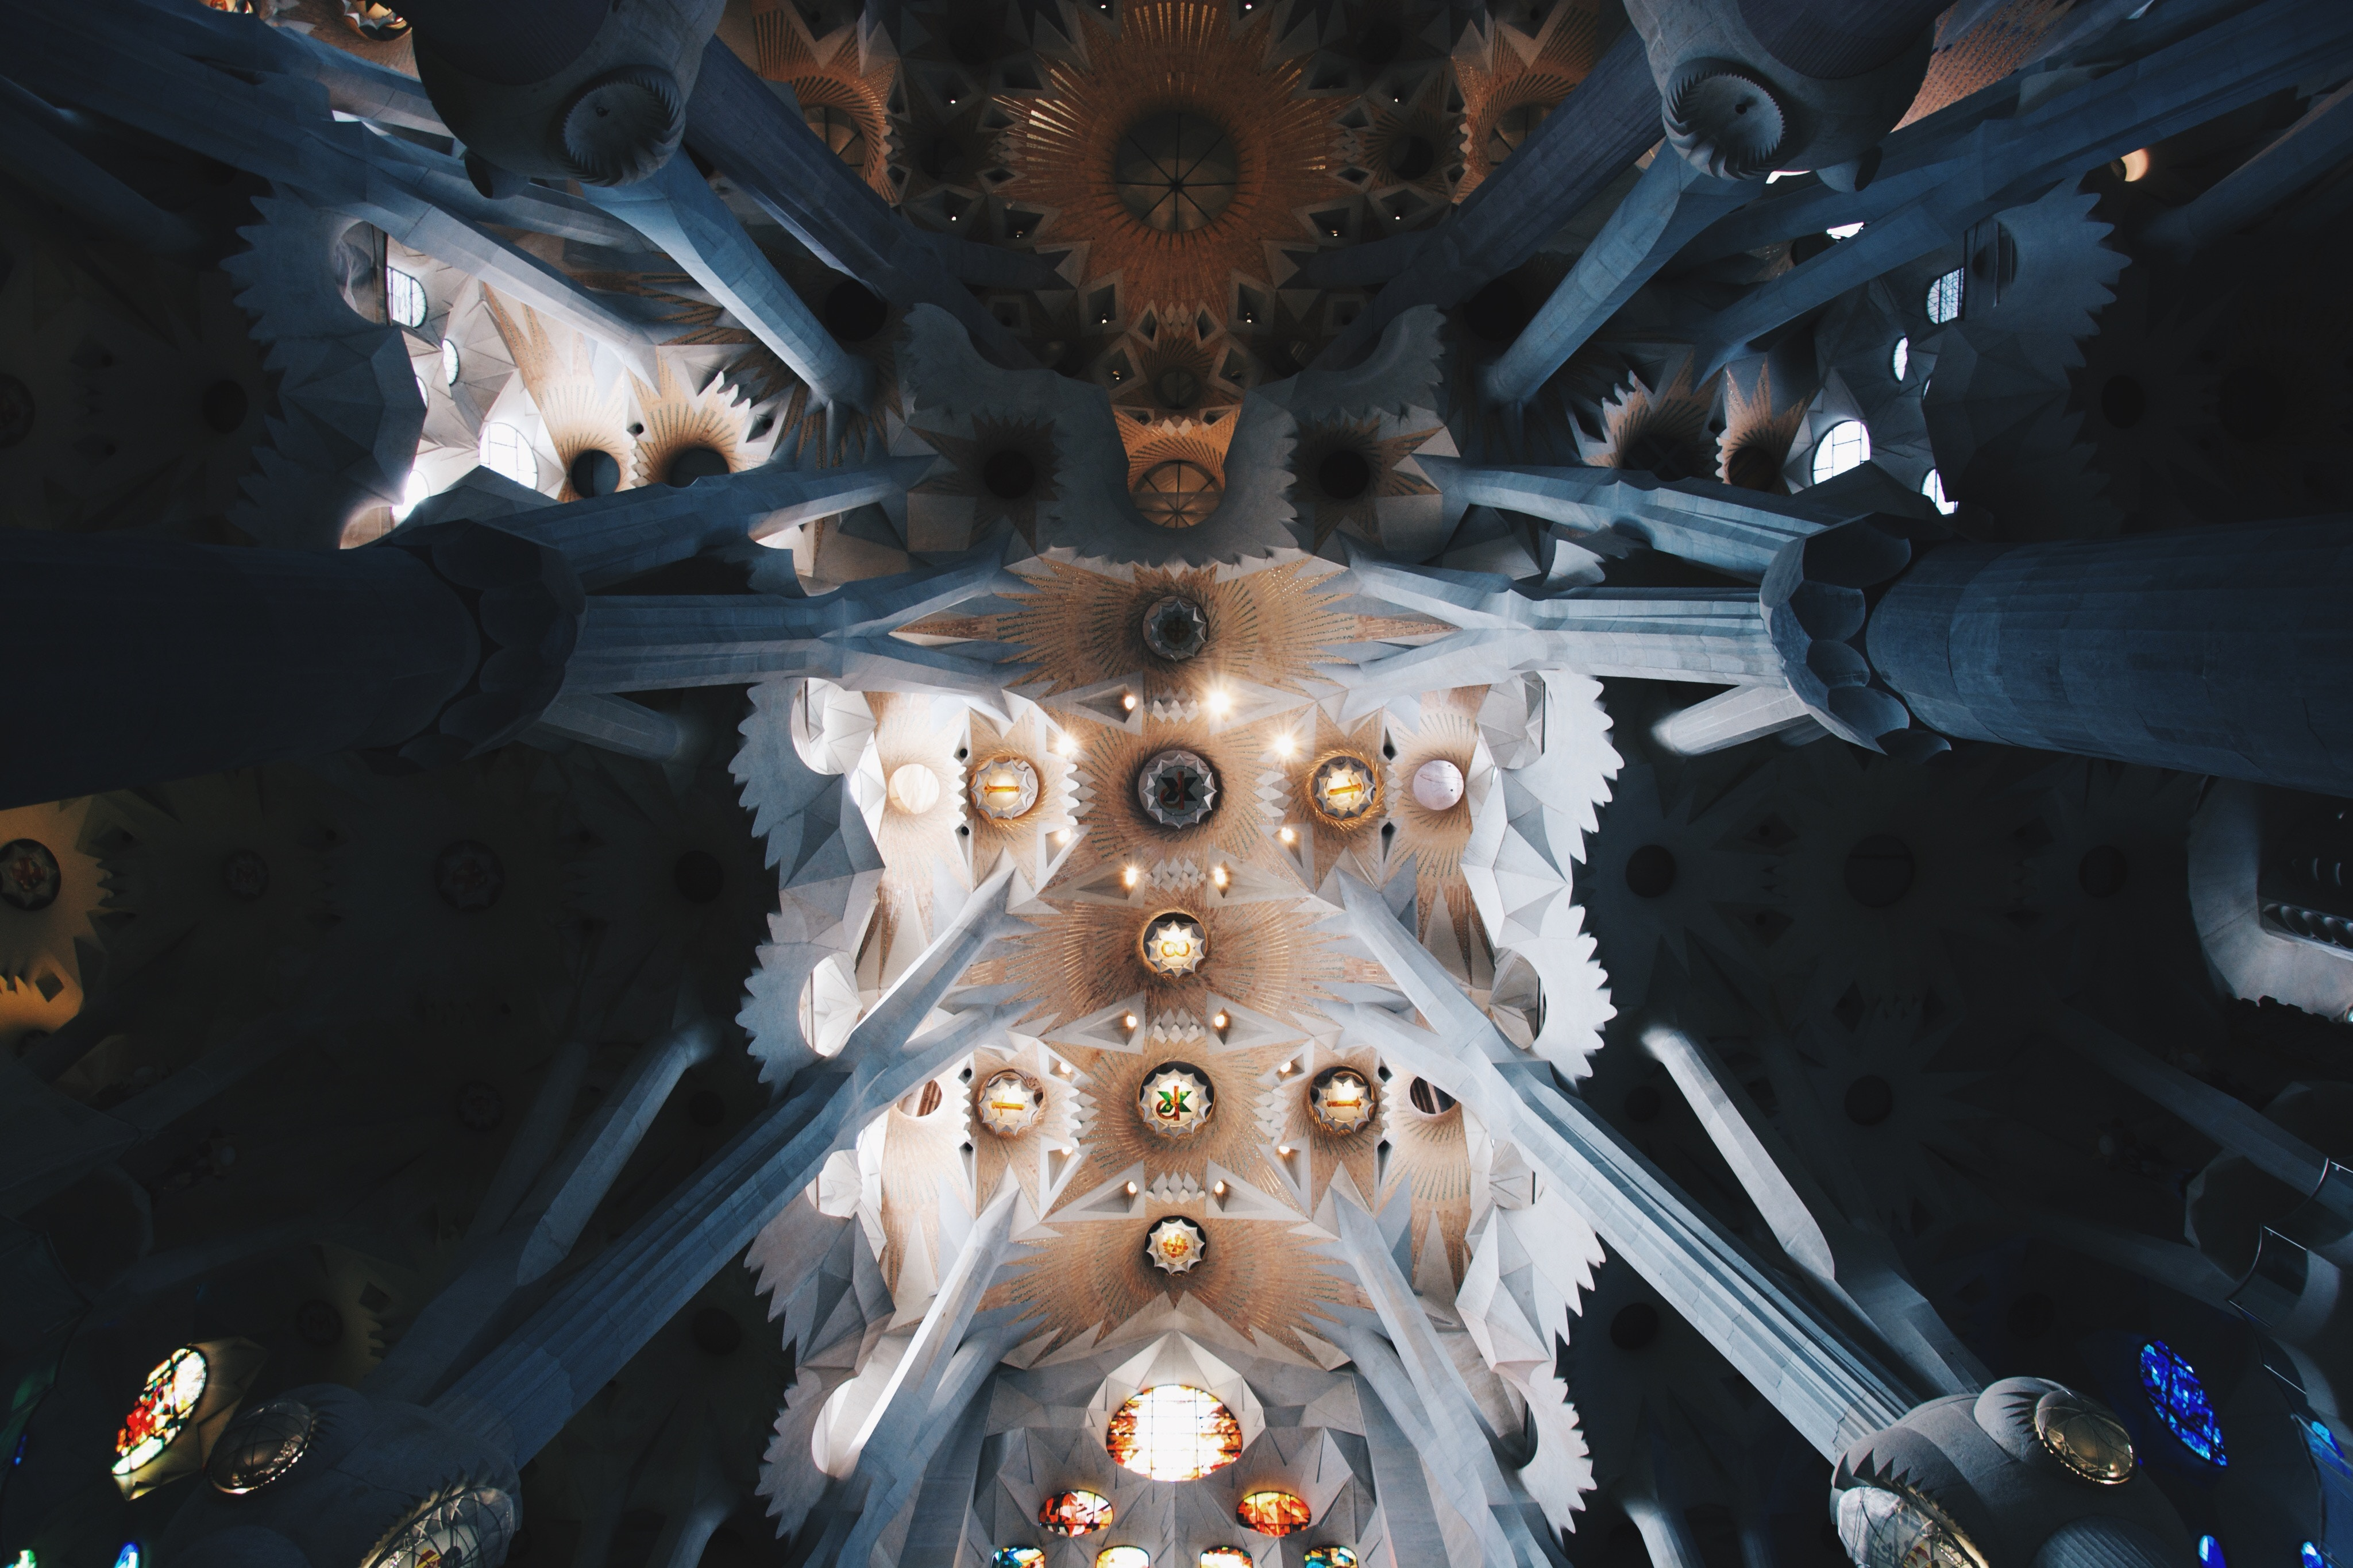 an image of the ceiling of the sagrada familia